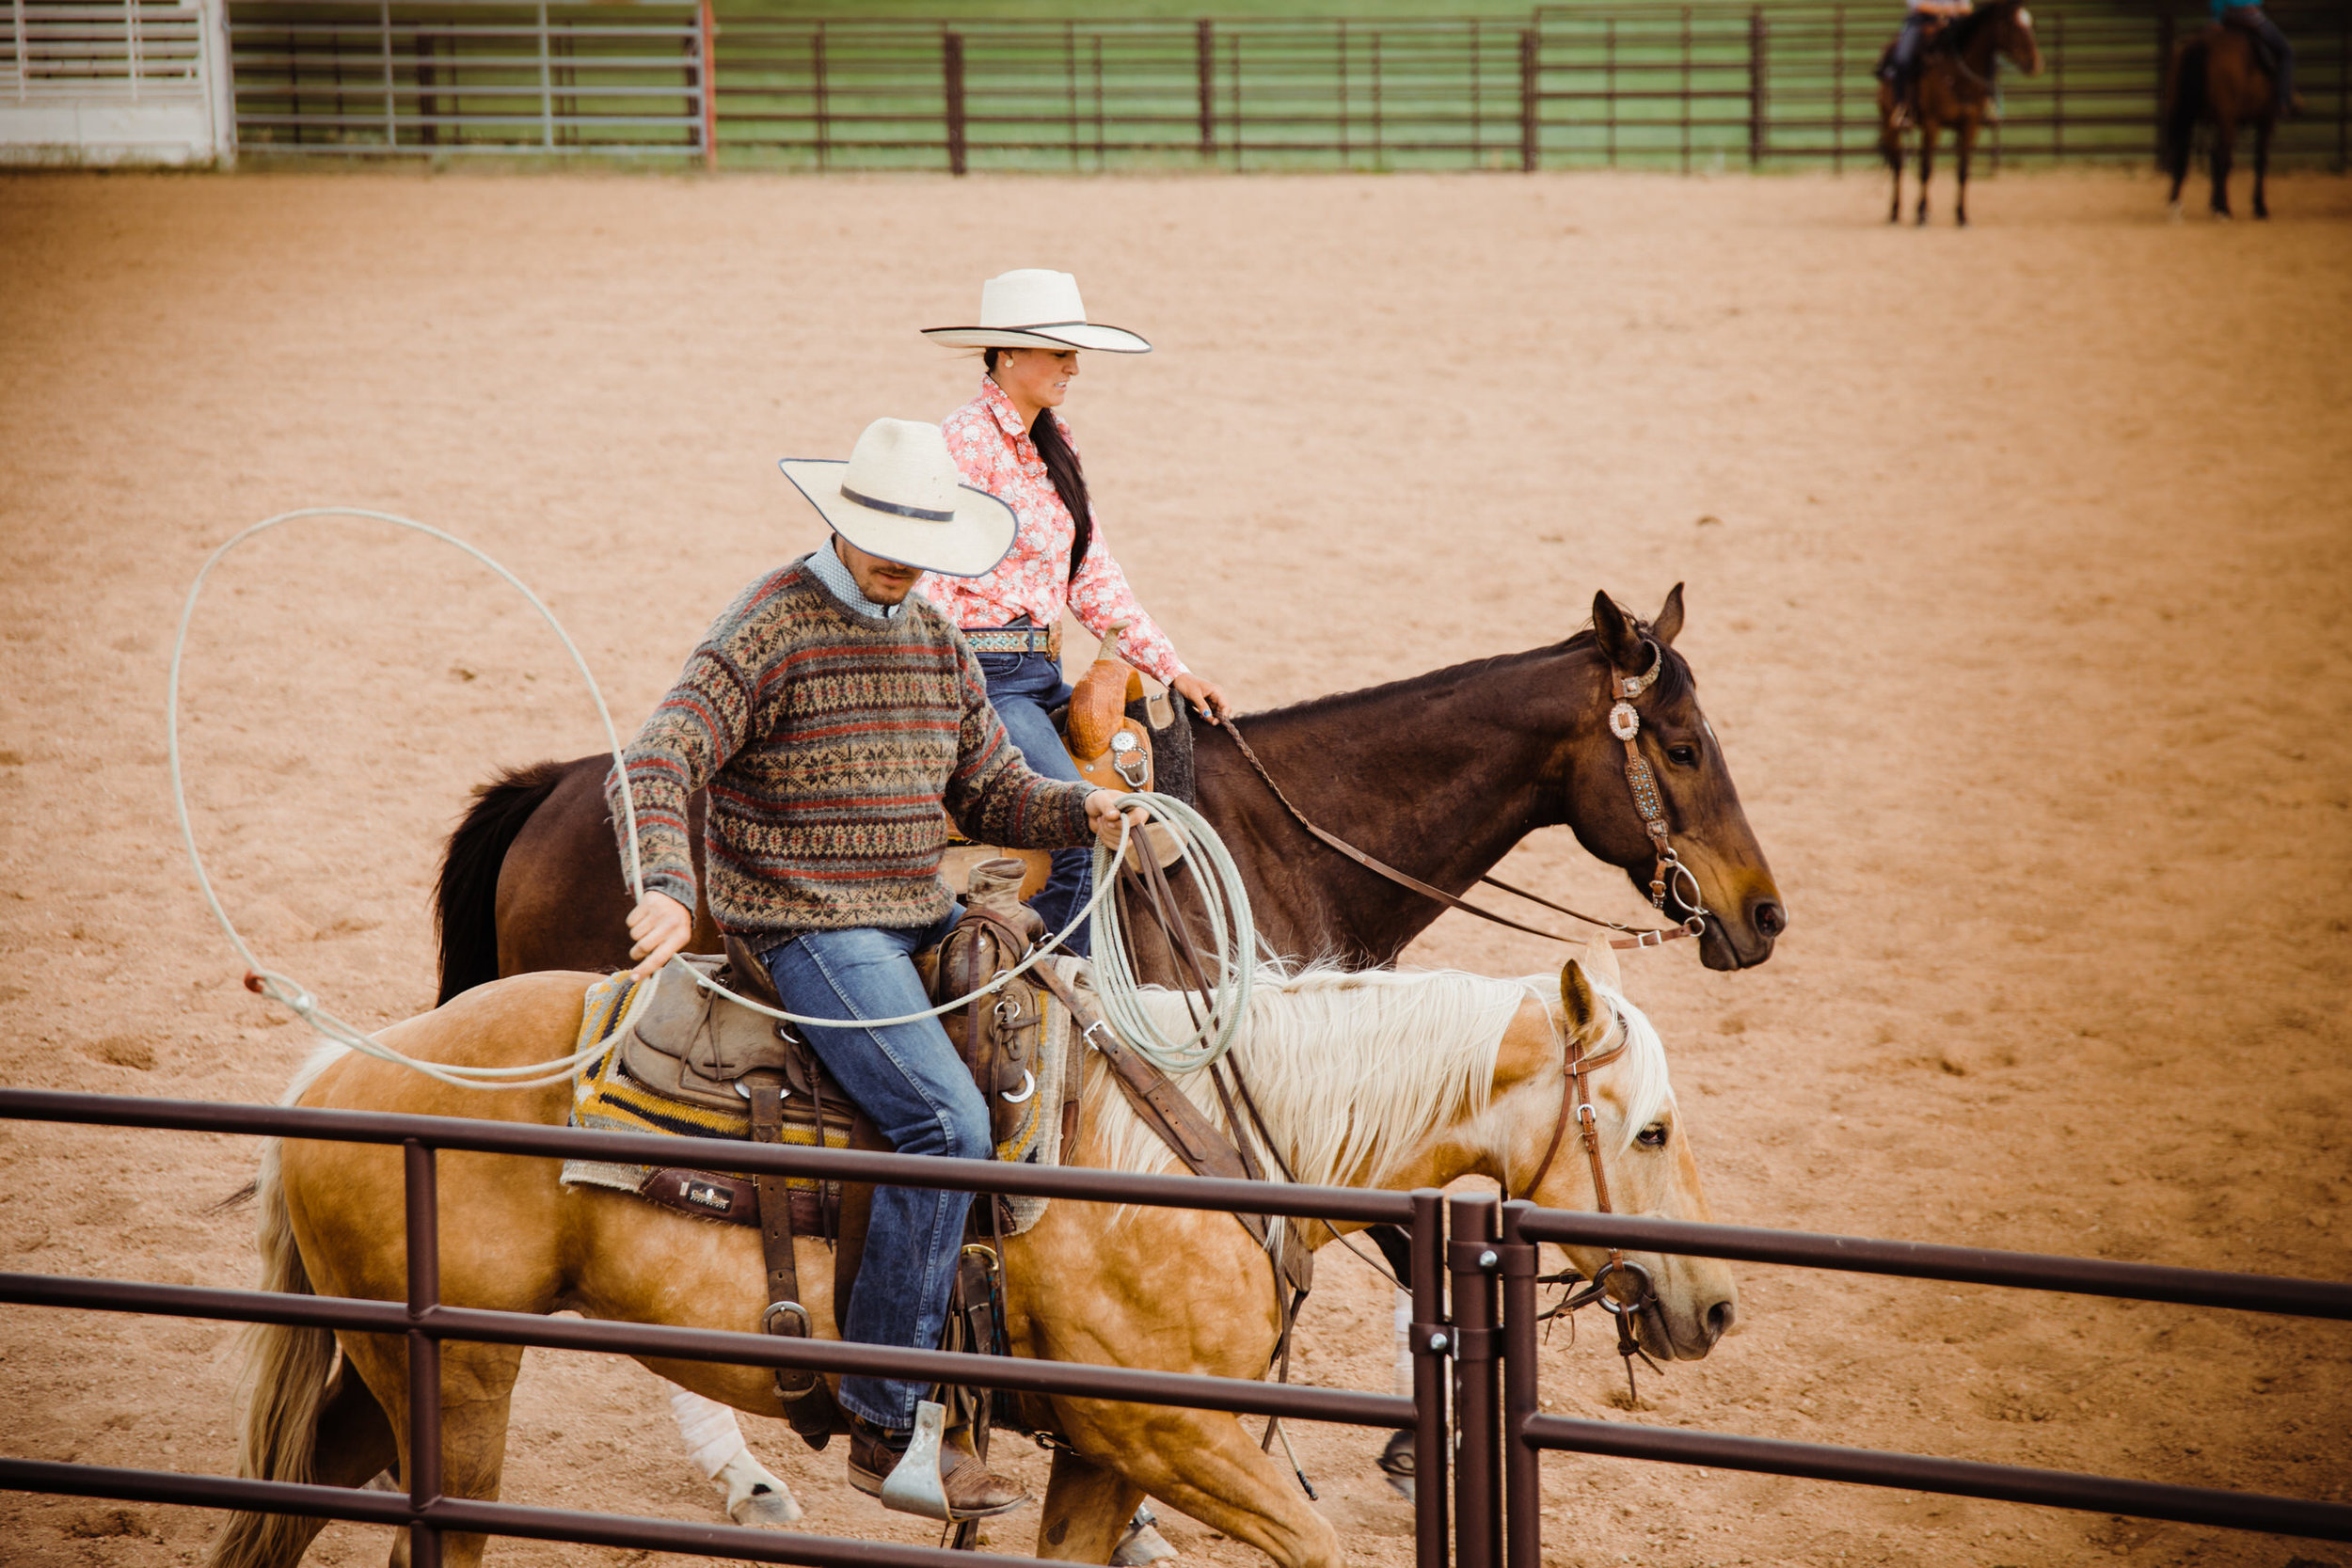 tonya-merke-photography-adventure-events-BrushCreekRanch-10.jpg